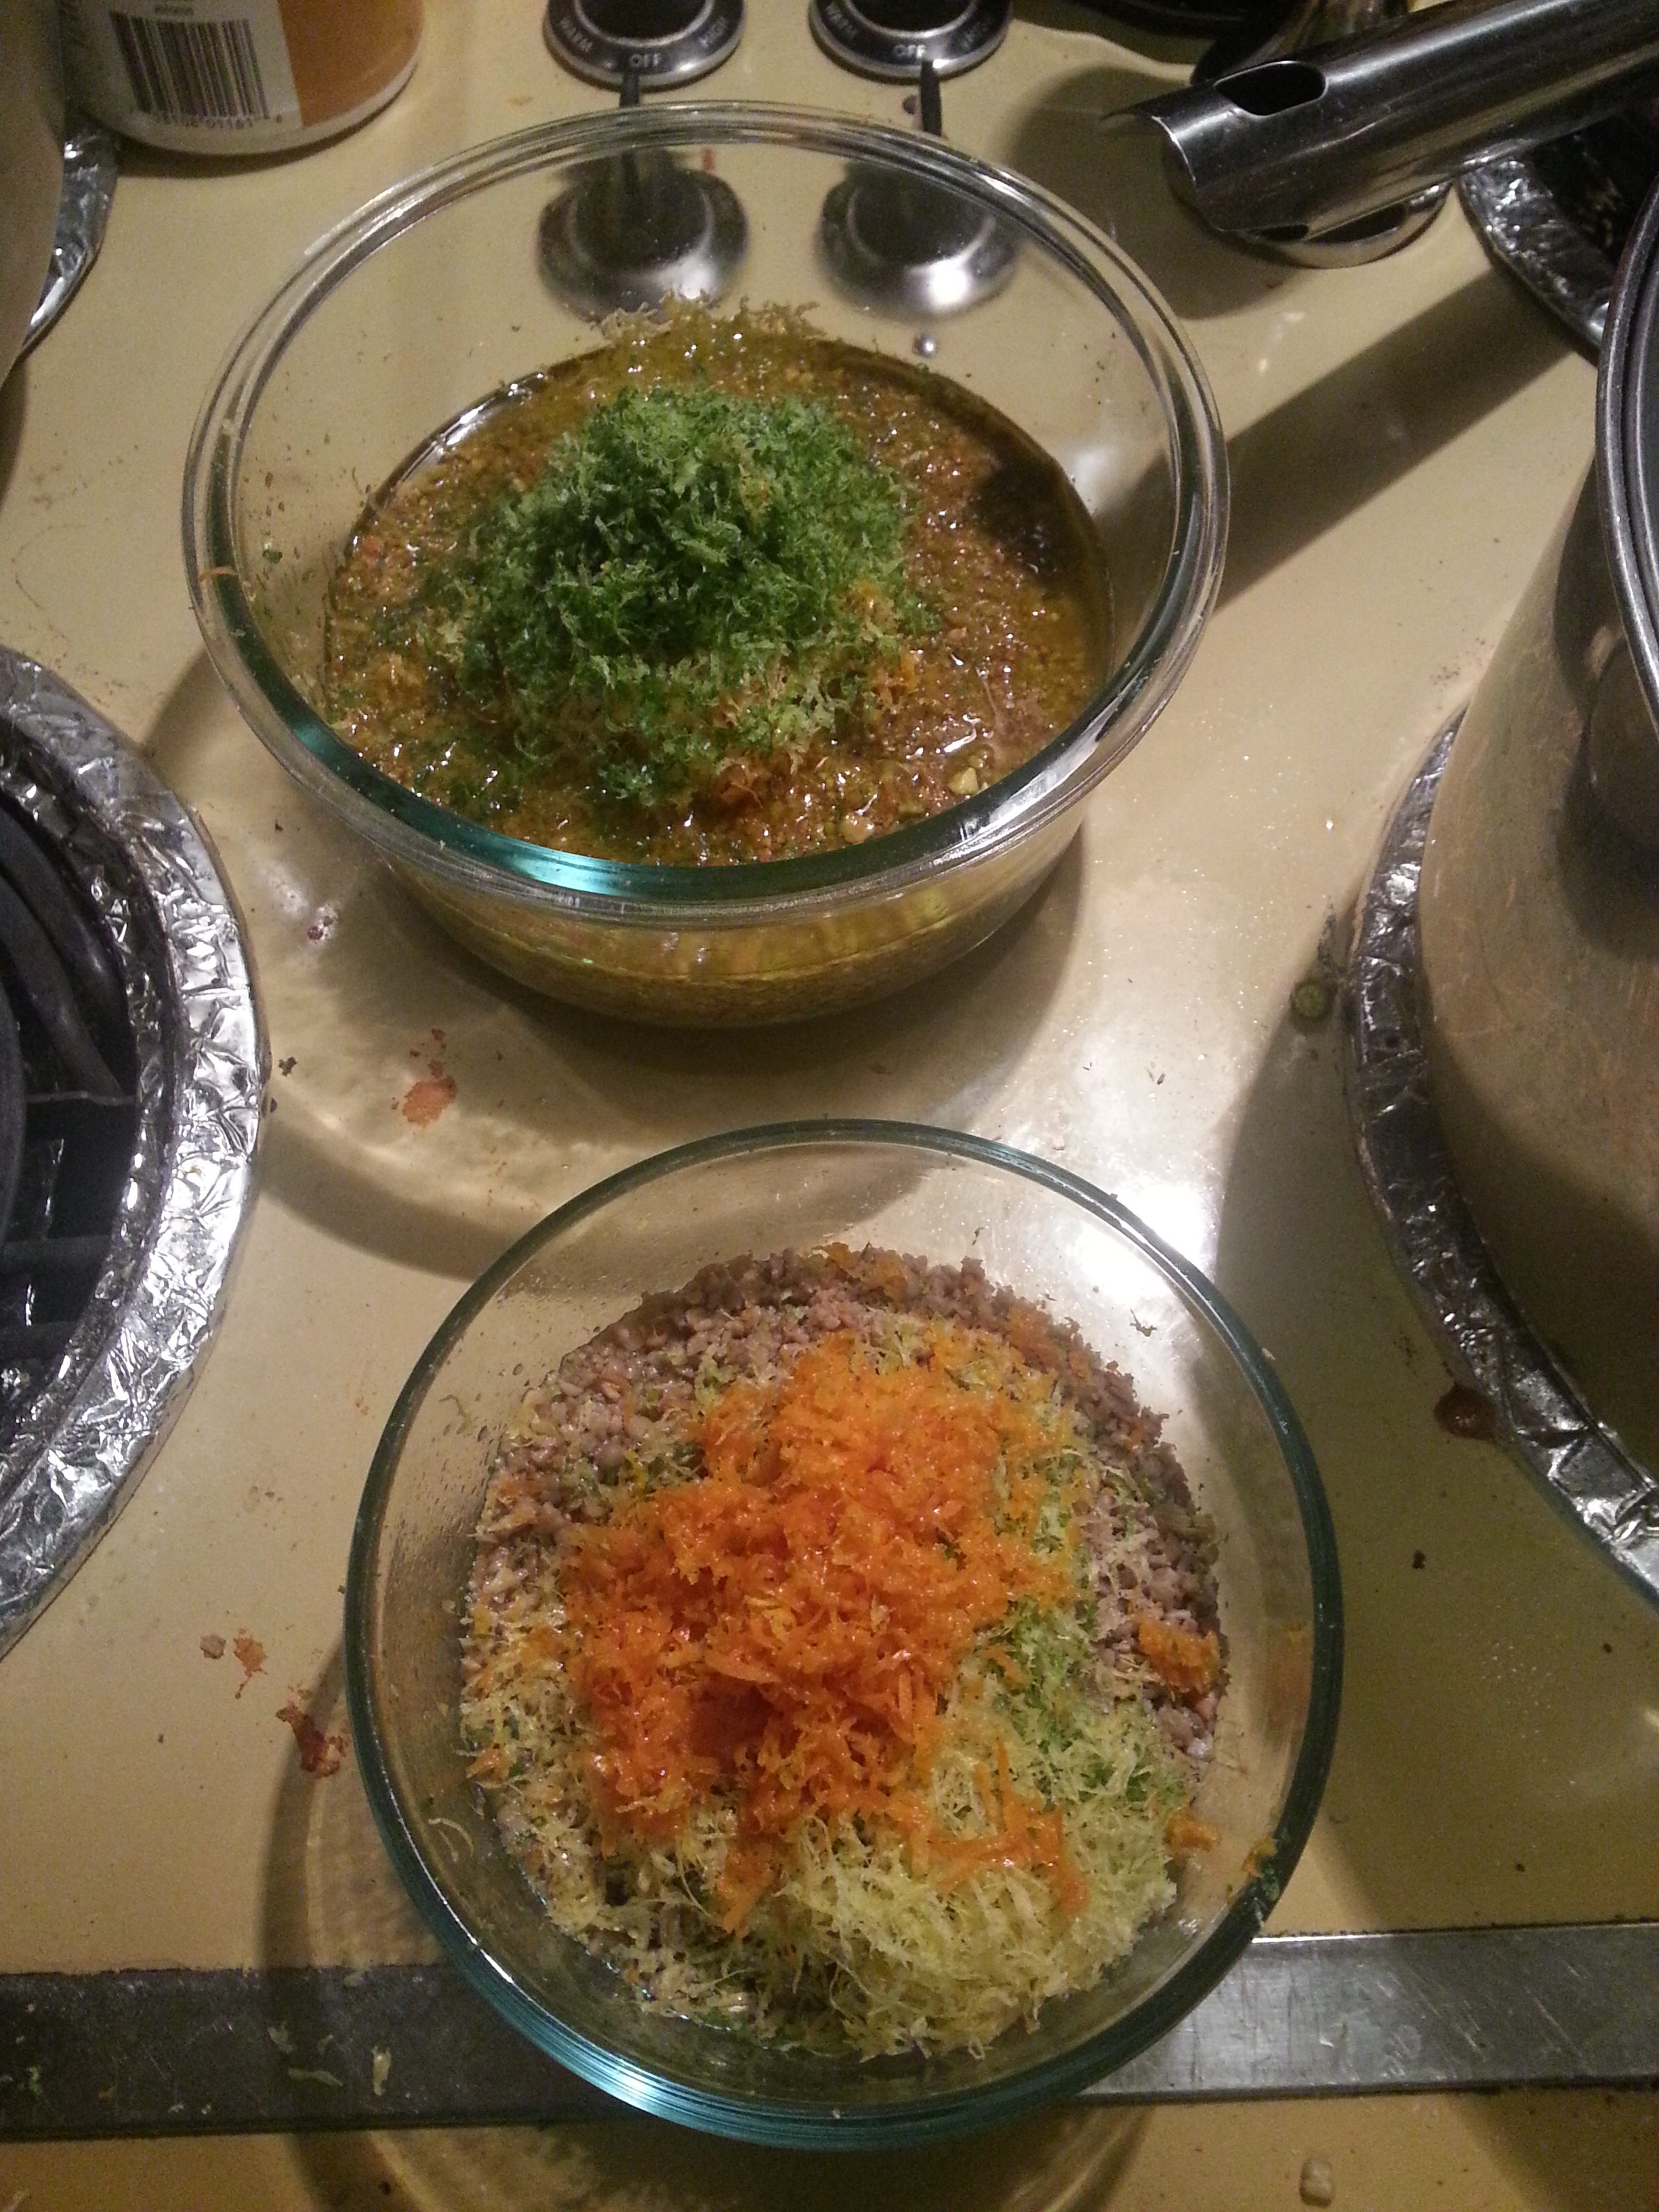 Citrus pistachio sauce liz loves cooking most years i invite guests for two big dinners one for the night of kol nidre kol nidre is the night before yom kippur one of the most important jewish forumfinder Images